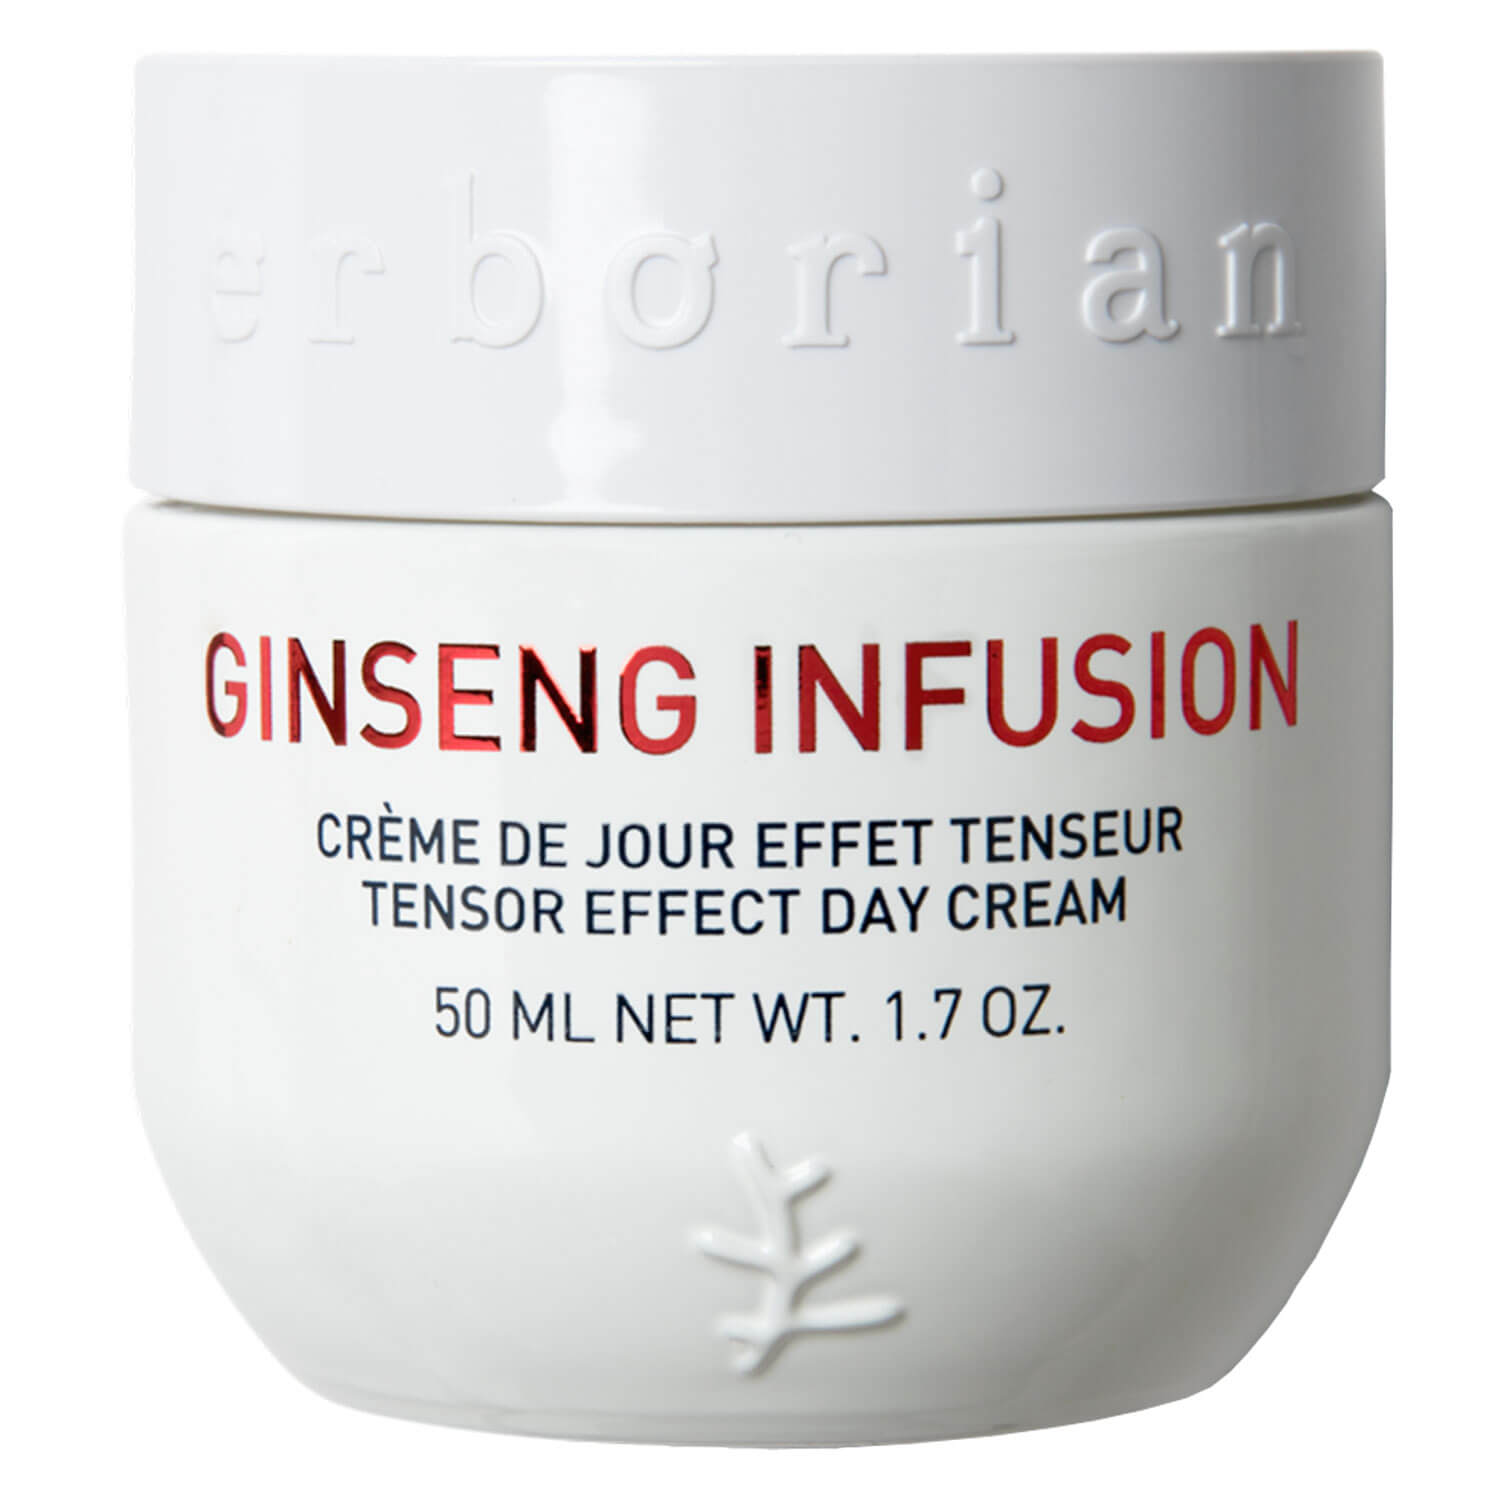 Ginseng - Infusion - 50ml